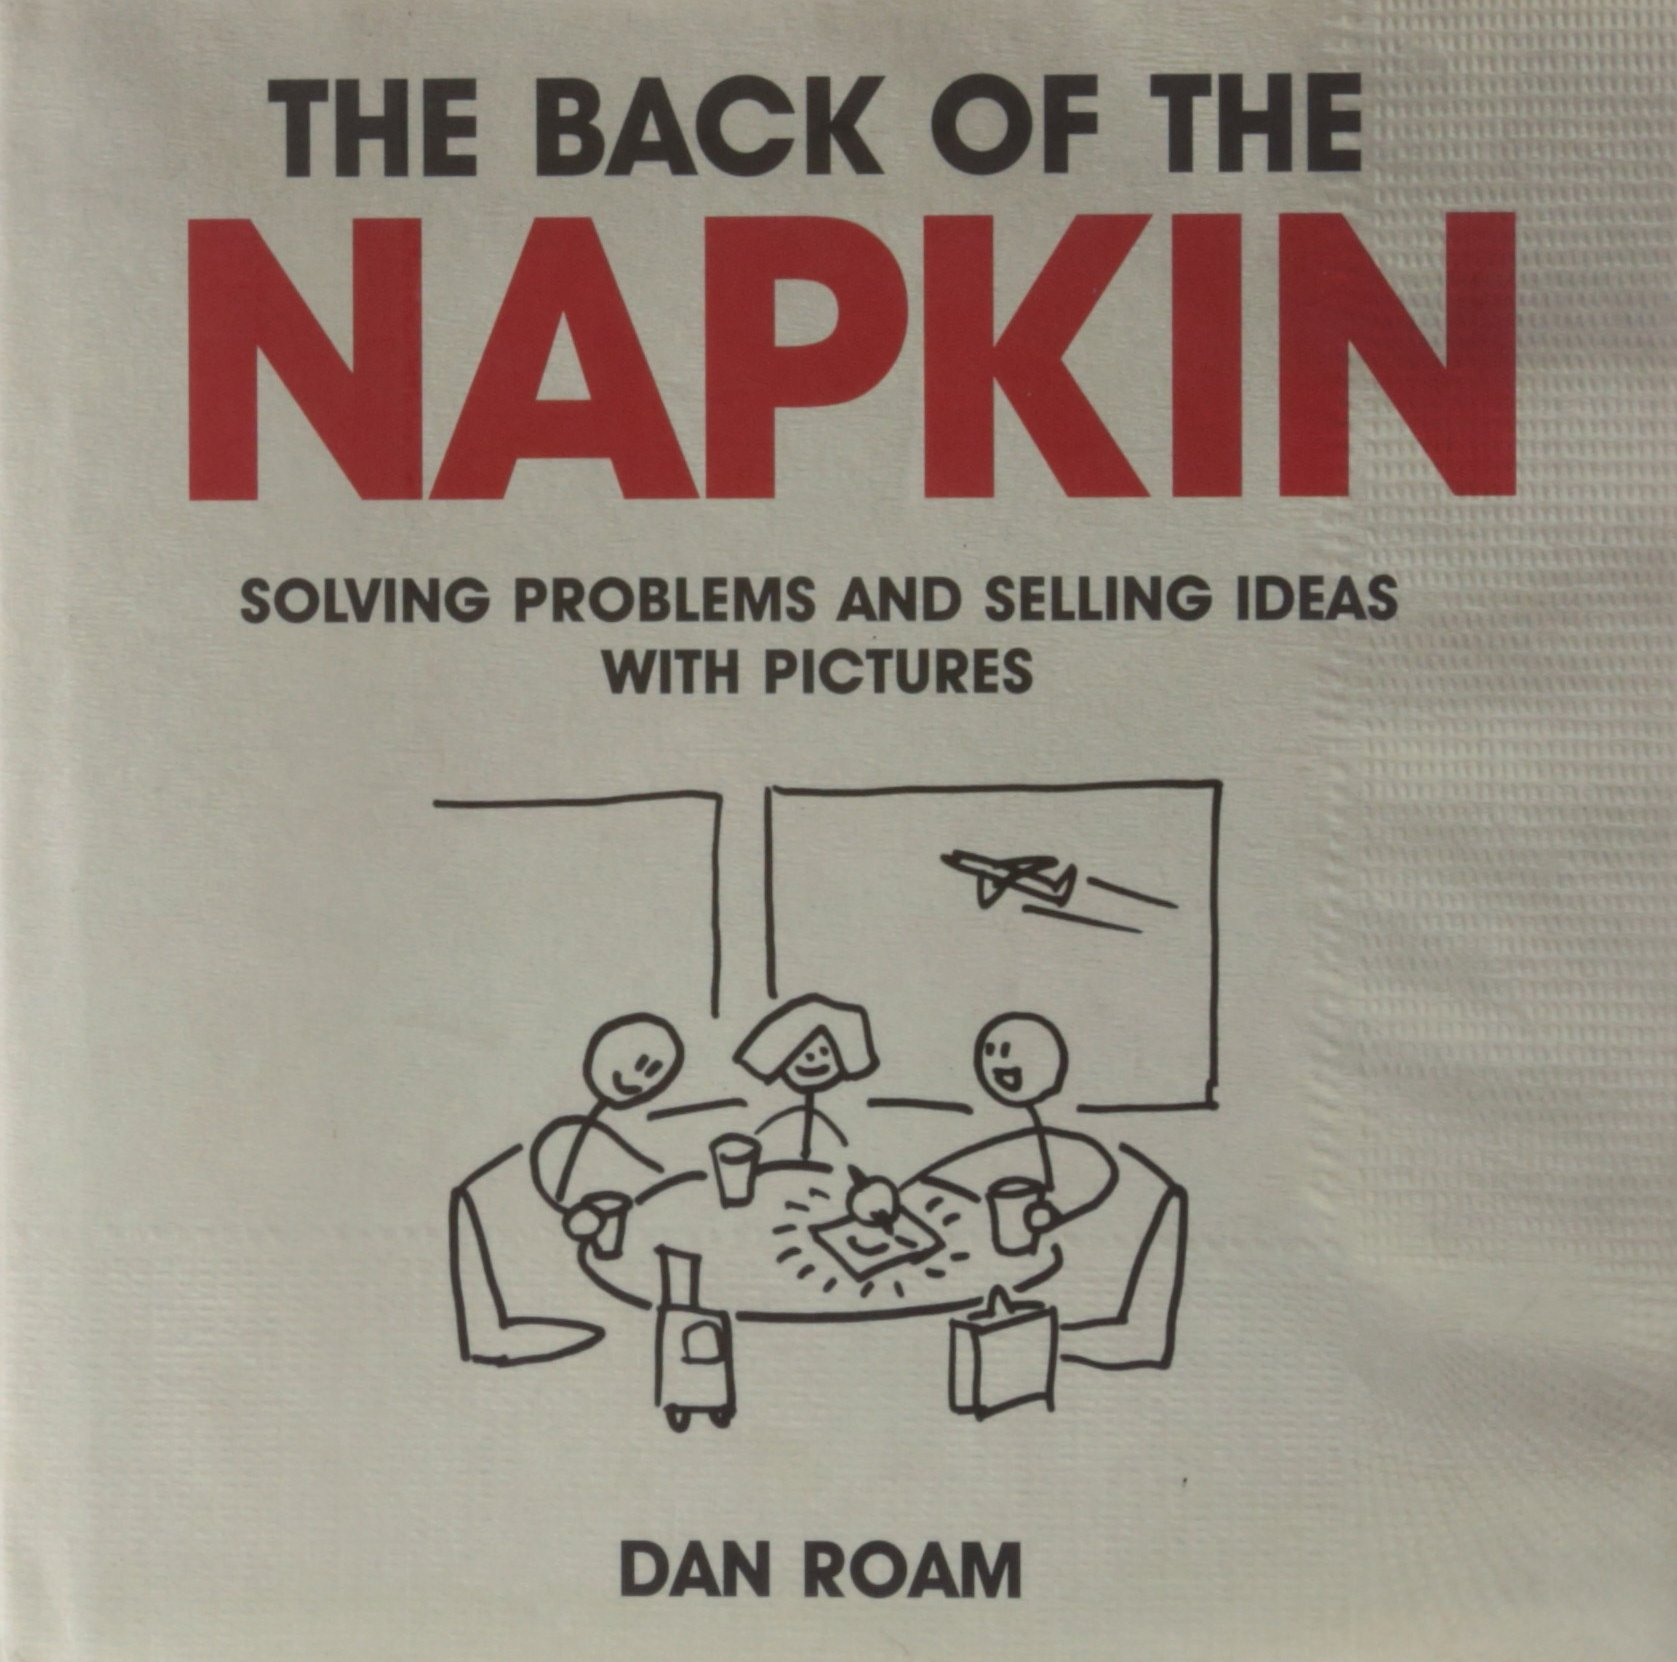 Image OfThe Back Of The Napkin: Solving Problems And Selling Ideas With Pictures